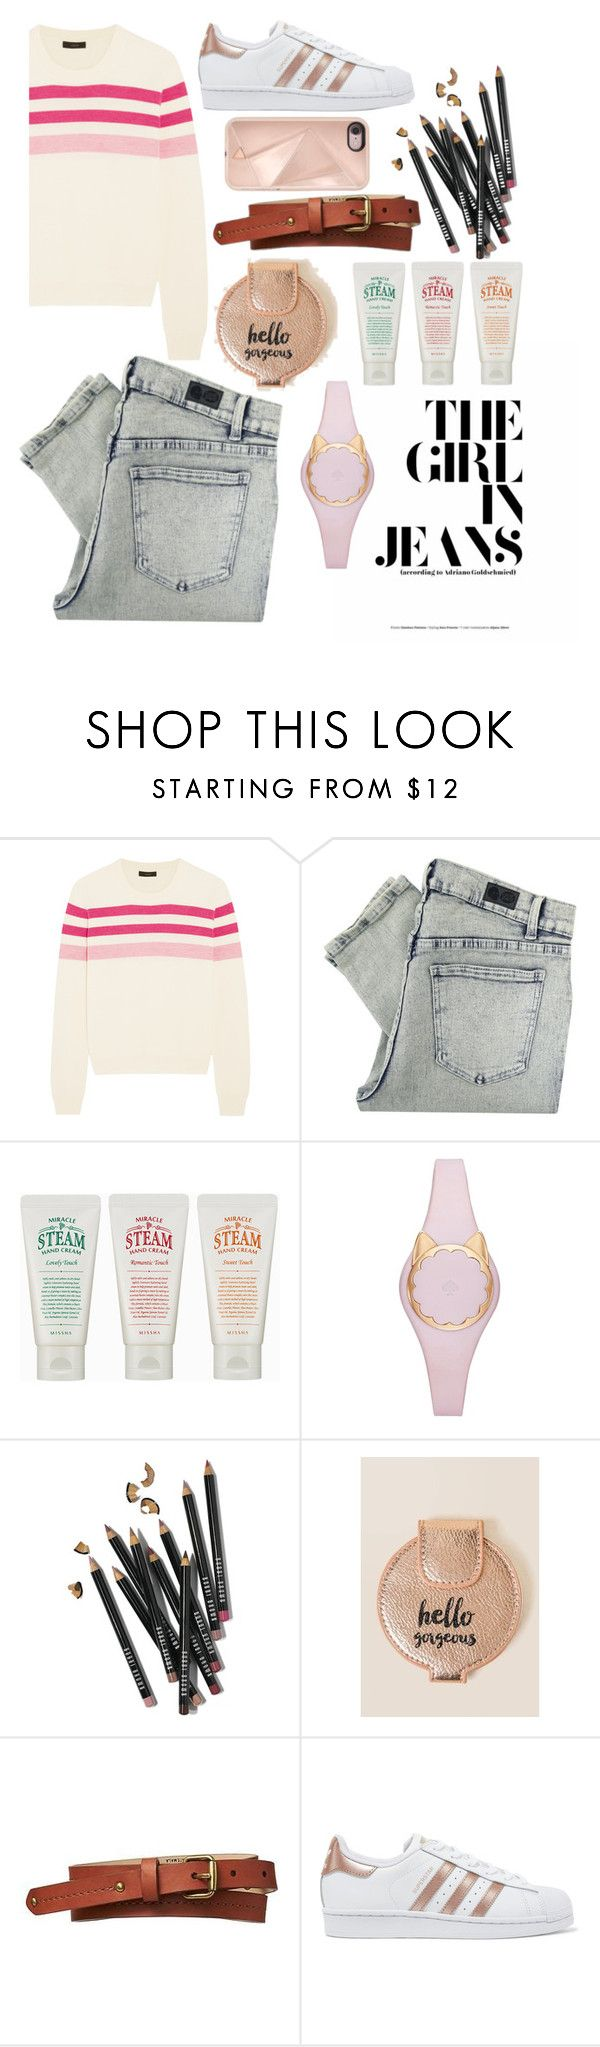 """""""The girl in jeans"""" by barbara-lancianese ❤ liked on Polyvore featuring J.Crew, Cheap Monday, Kate Spade, Bobbi Brown Cosmetics, Gap, adidas Originals and Rebecca Minkoff"""